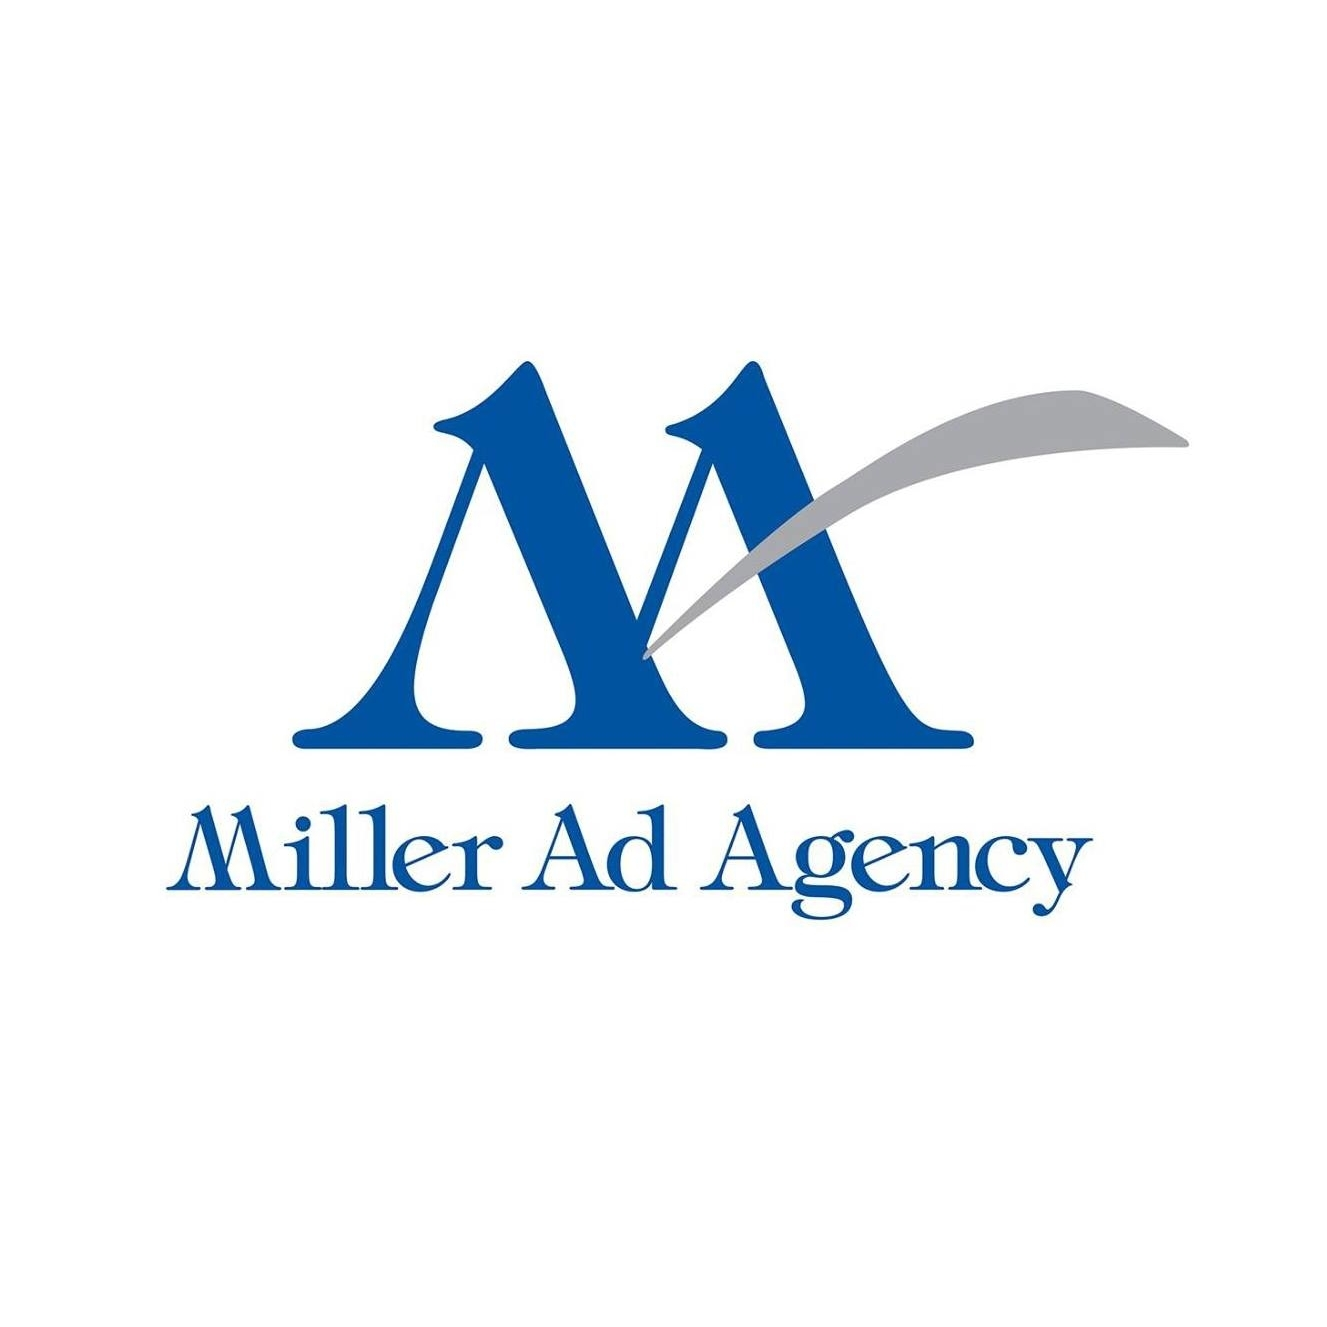 Miller Ad Agency - Dallas, TX 75234 - (972)243-2211 | ShowMeLocal.com